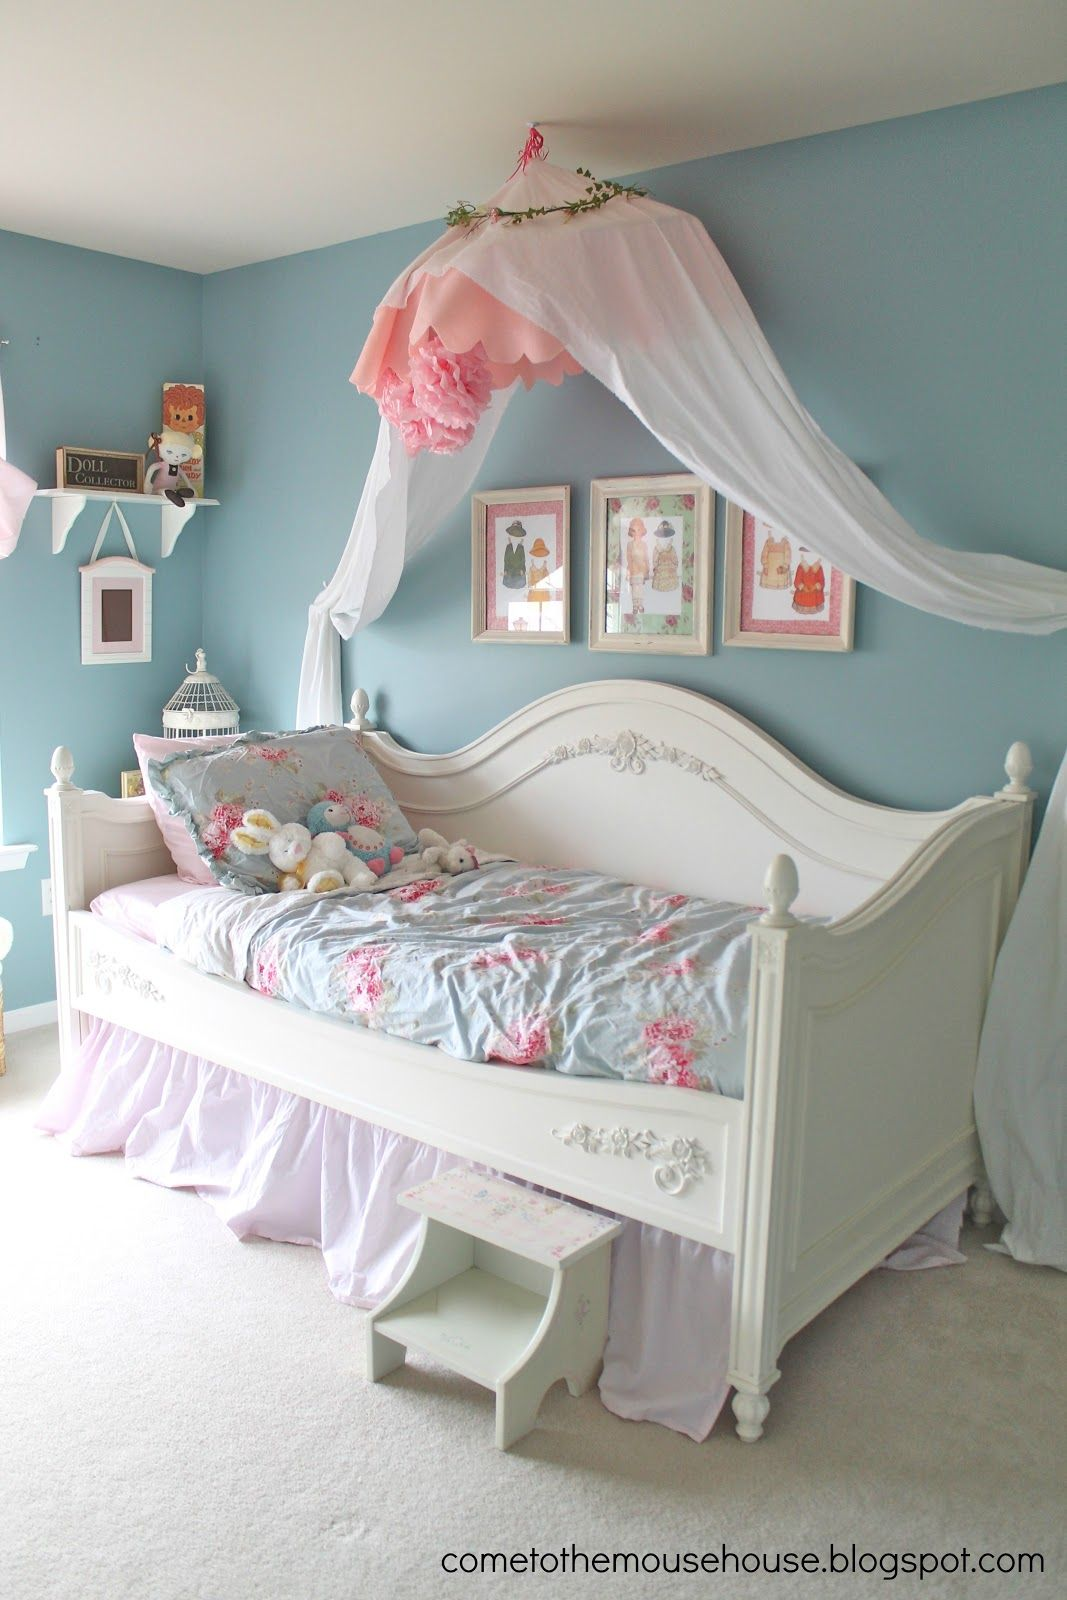 Welcome To The Mouse House Shabby Chic Bedroom Reveal: shabby chic bedroom accessories